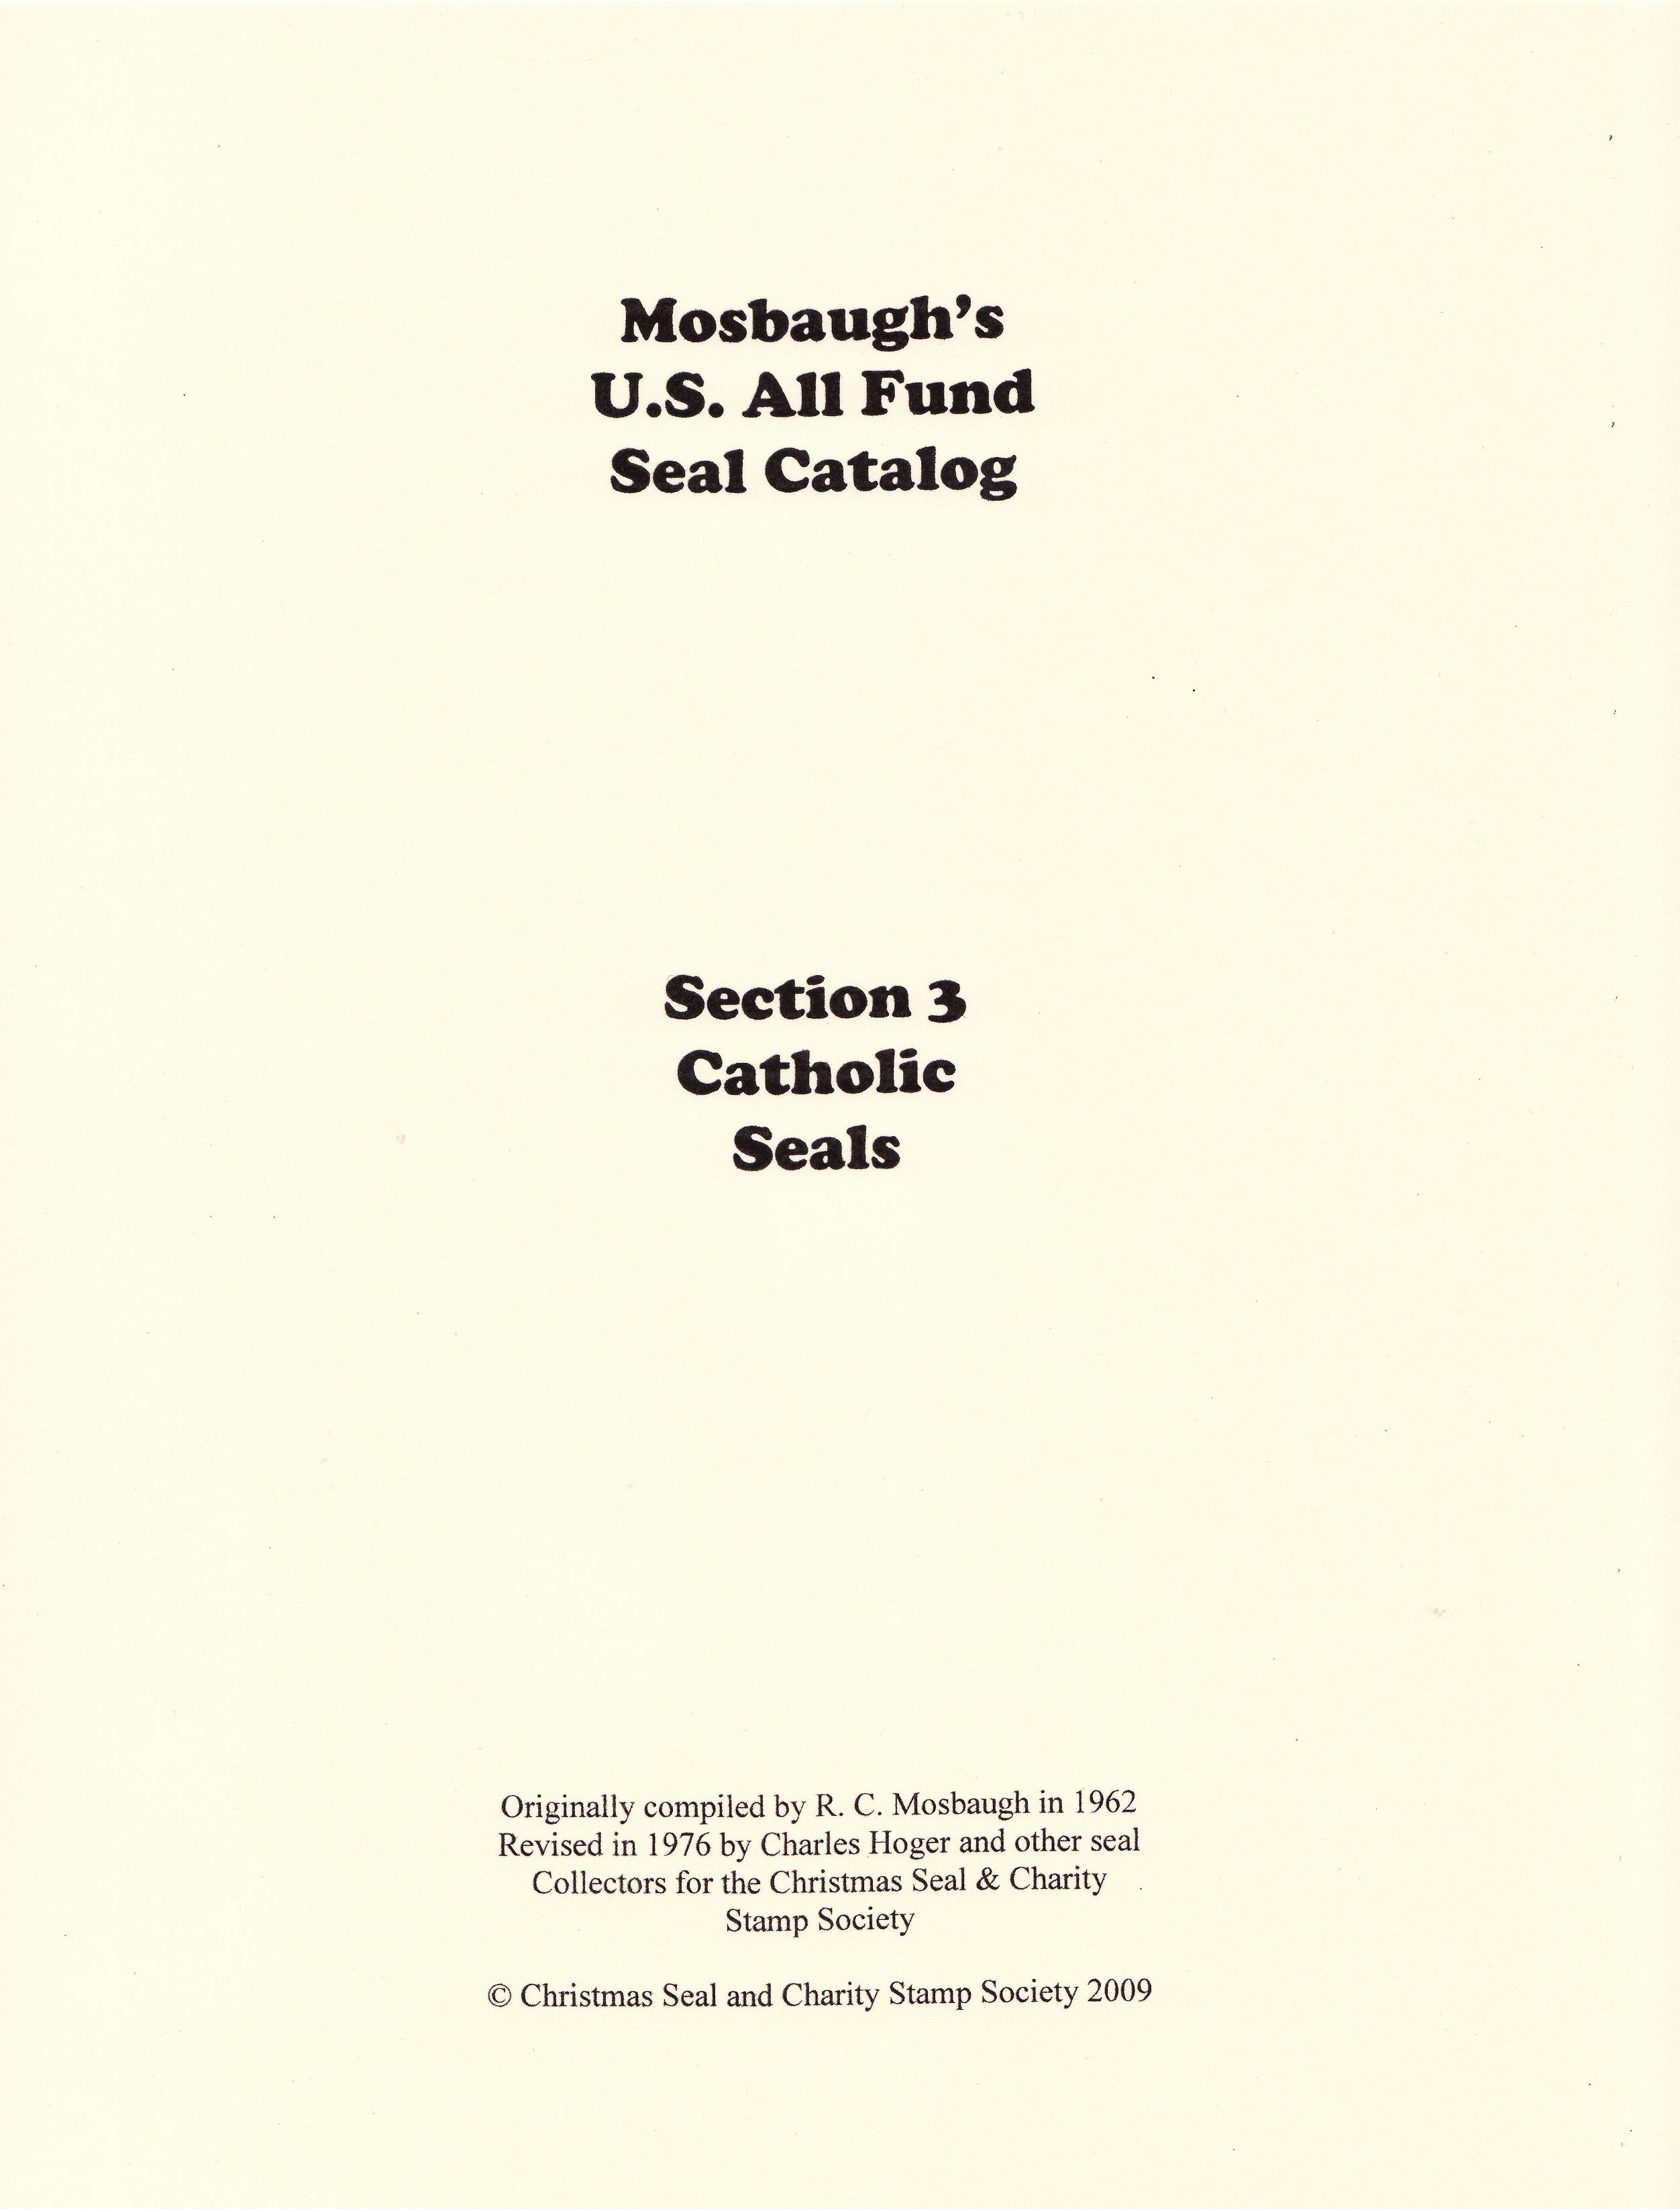 Mosbaugh's Catalog, Sec. 3, Catholic Charity Seals,  Boys Town Seals, 1962 ed., Rev. 1983